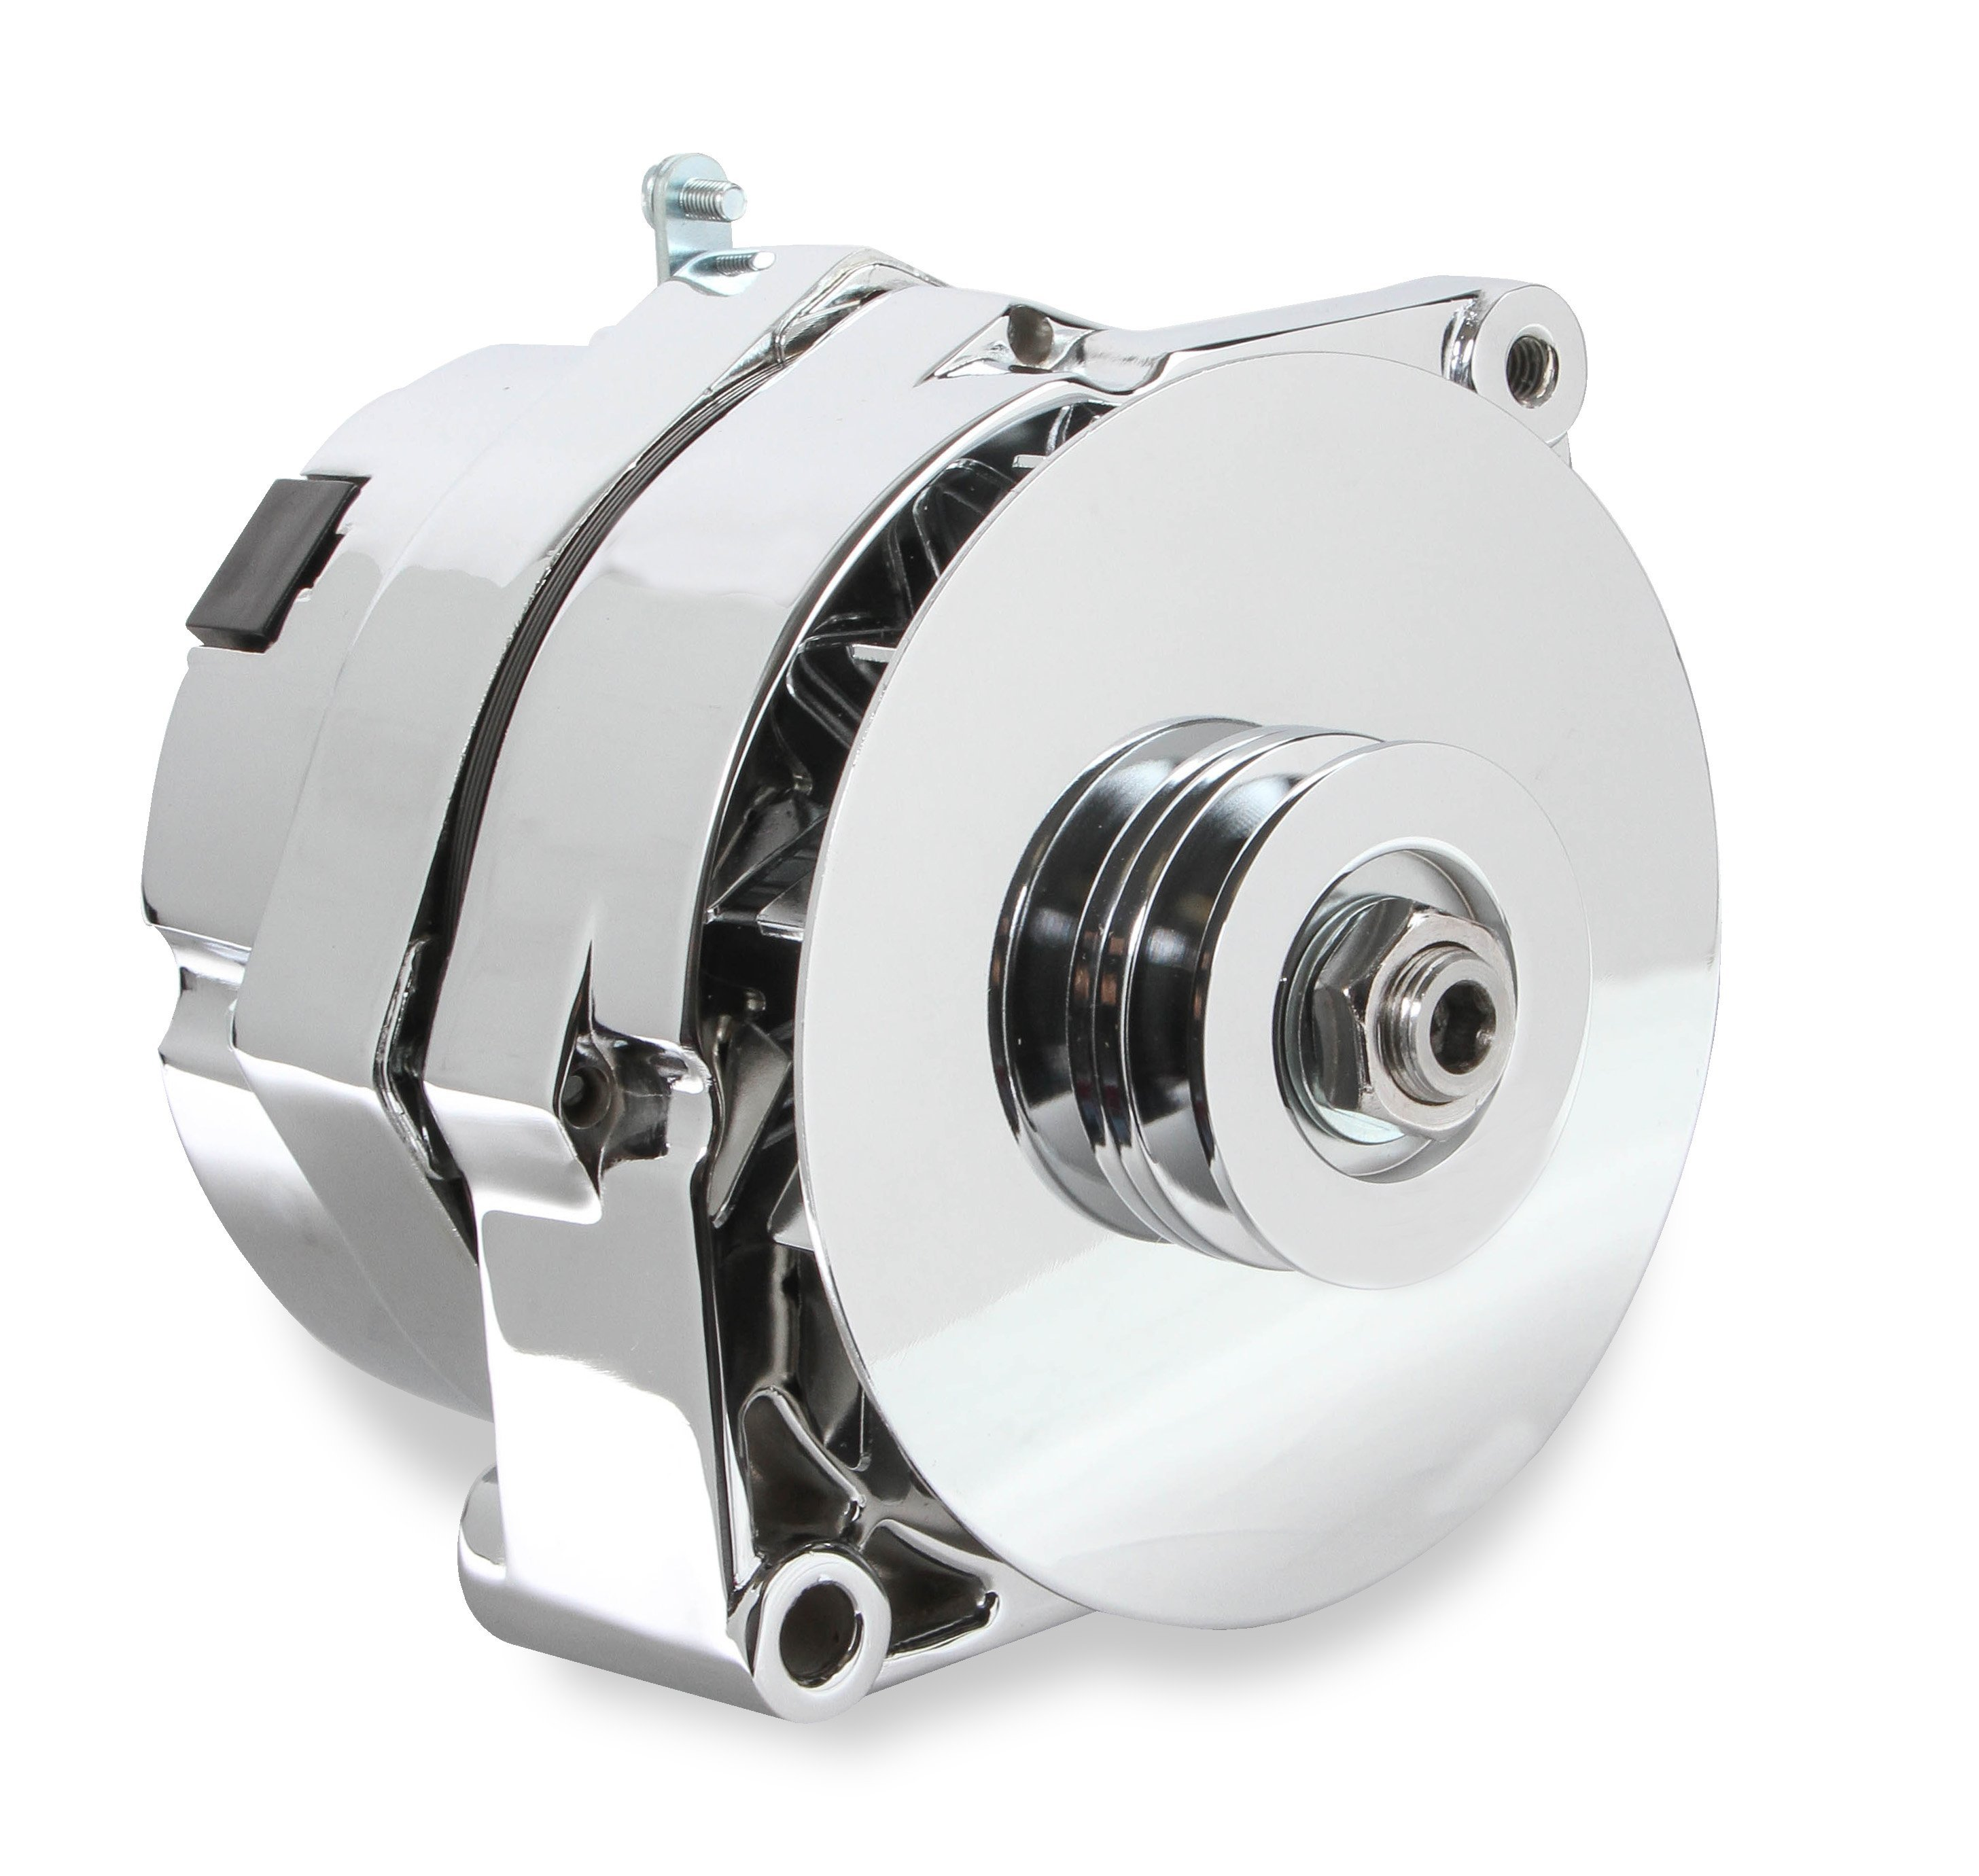 51203cg - mr gasket 1-wire alternator - 140 amp - chrome finish image